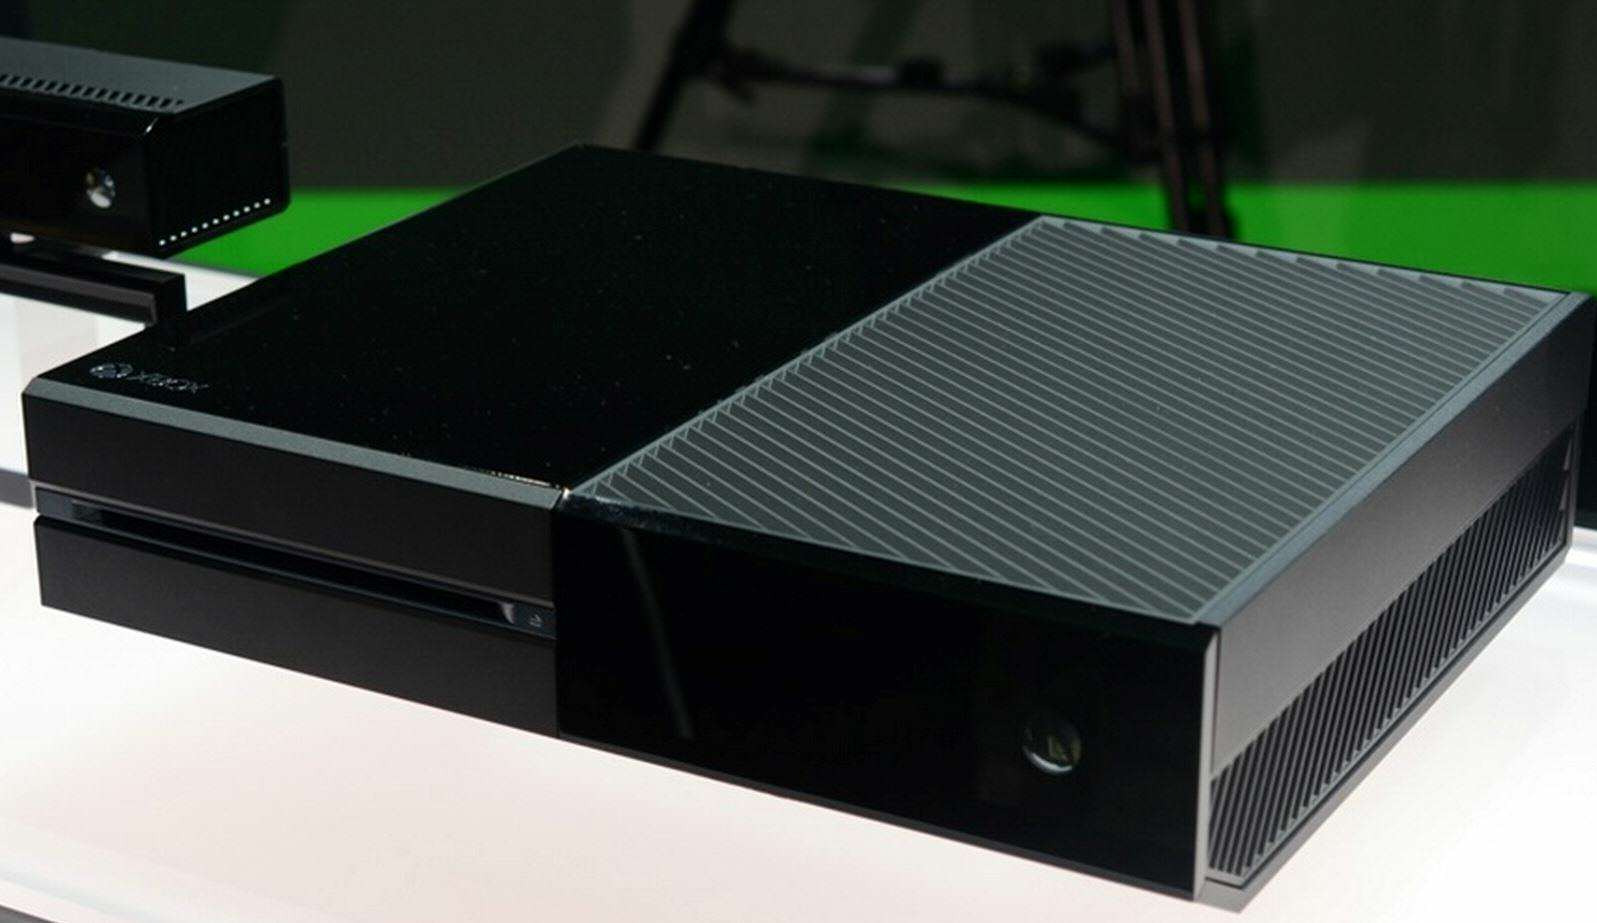 xbox one Microsoft Announce Plans For Touted Feature Are On Hold